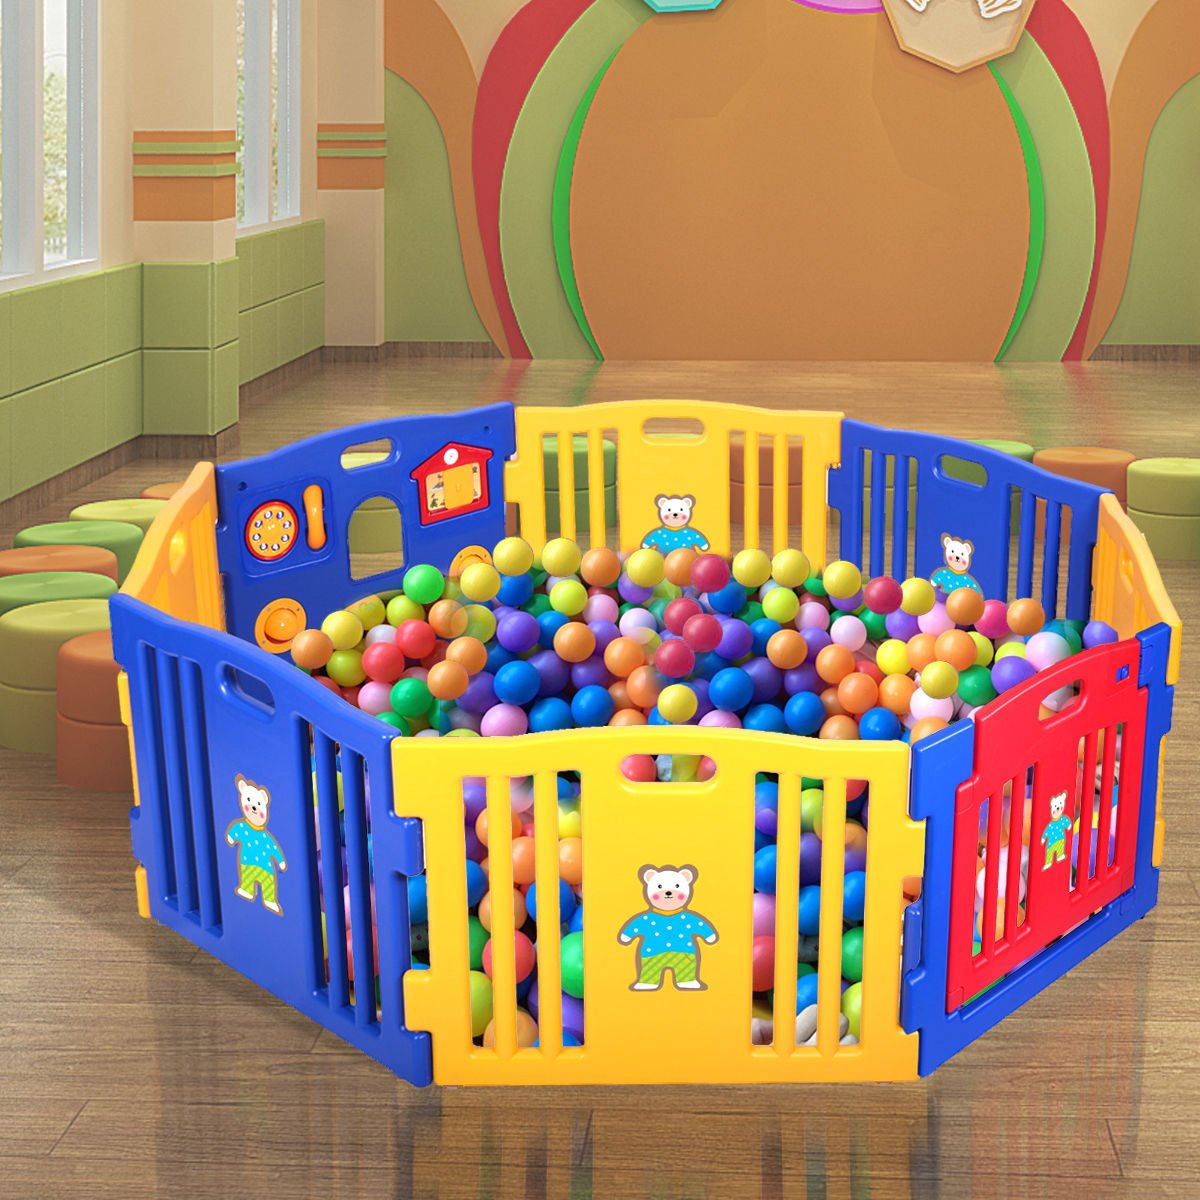 New 8 Panel Safety Play Center Baby Playpen Kids Yard Home Indoor Outdoor Pen by Eade shop (Image #3)